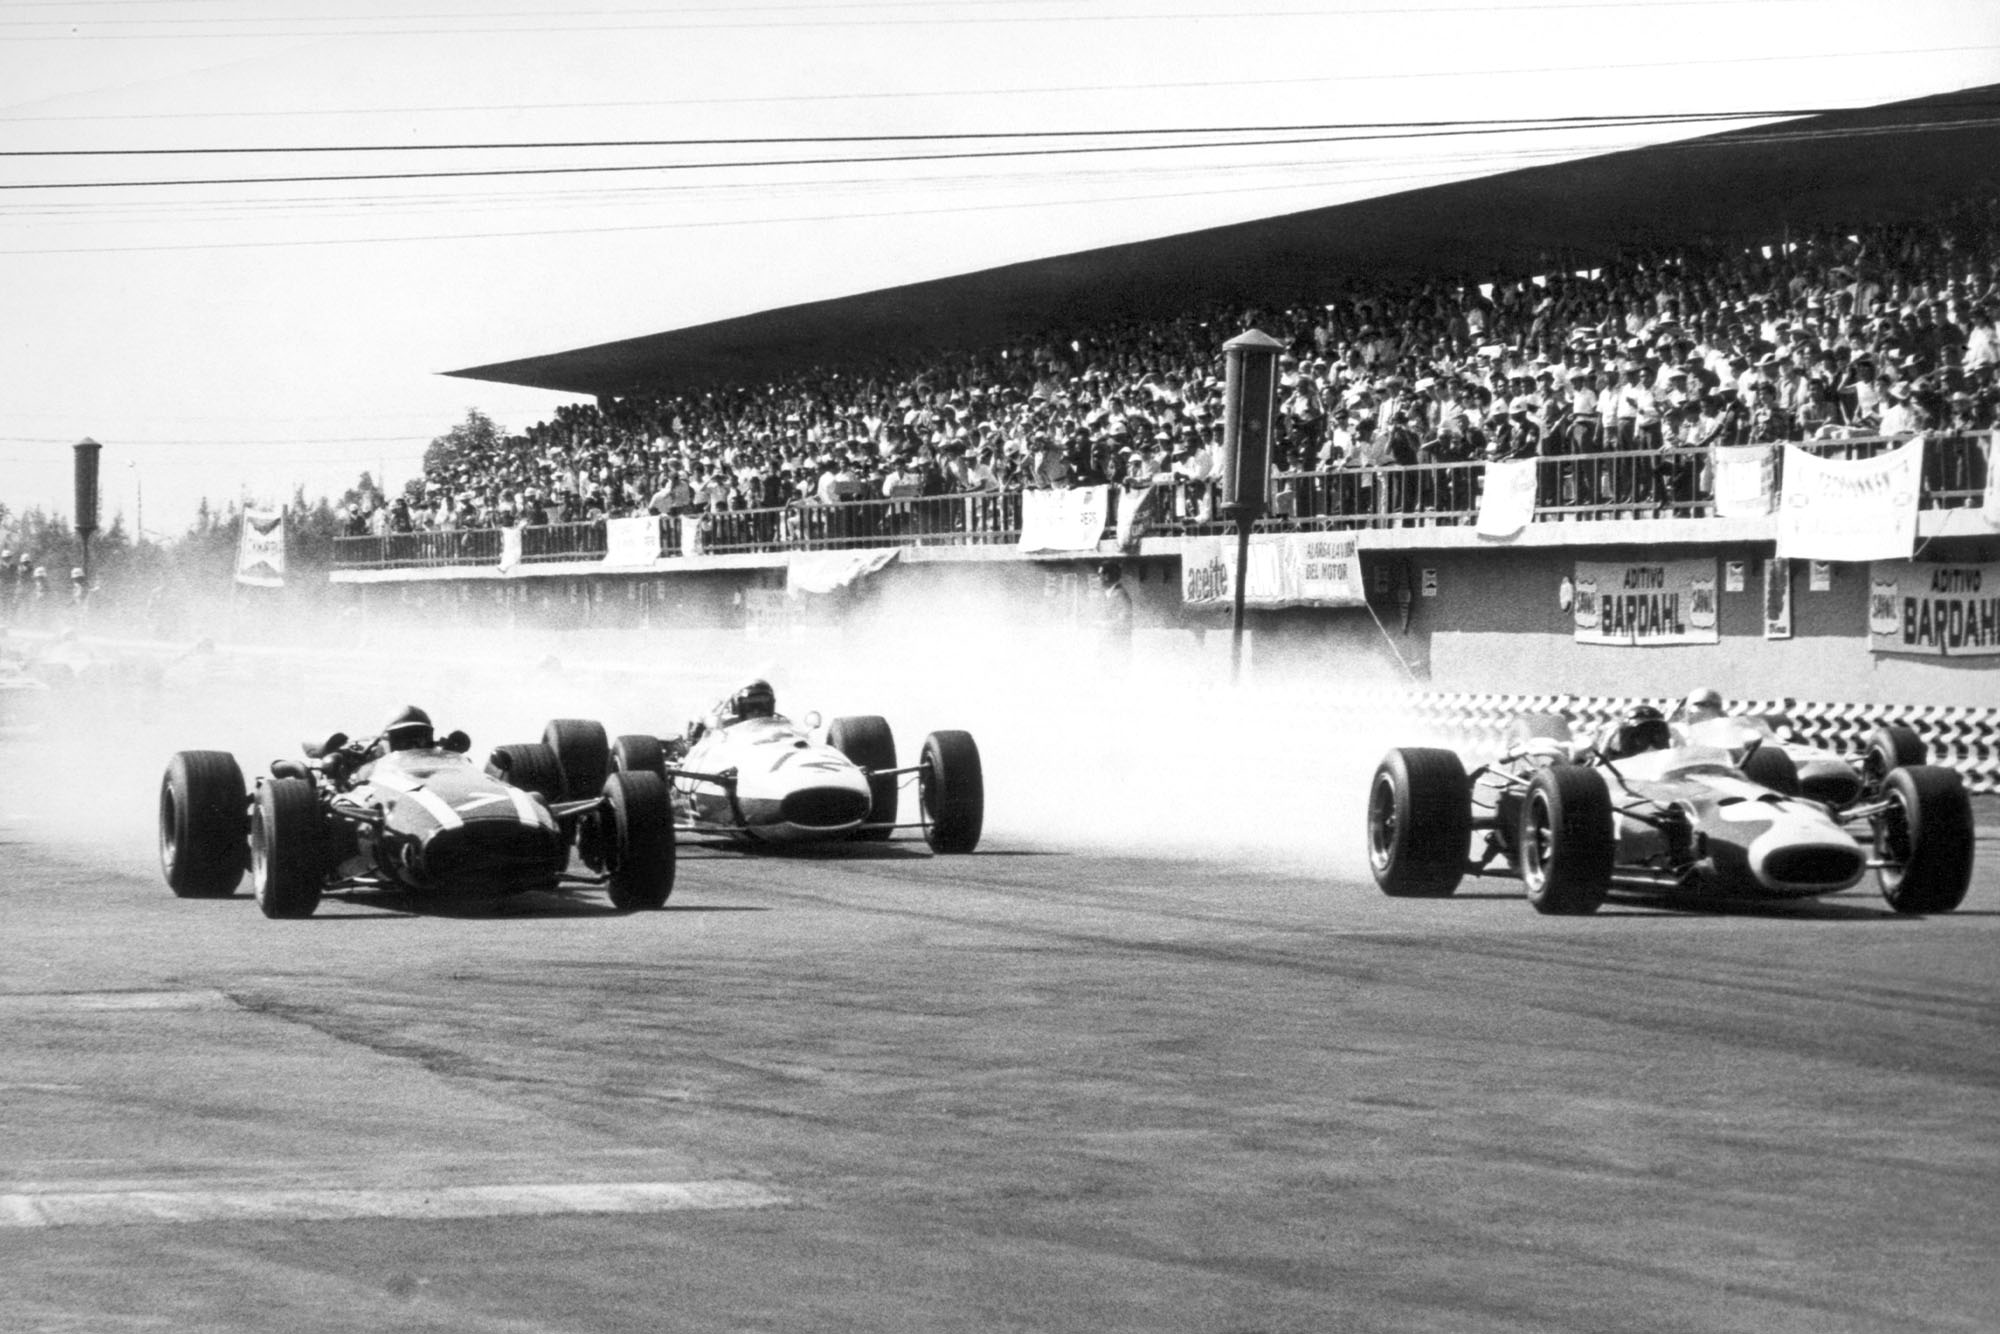 John Surtees, Cooper T81-Maserati, 1st position, Richie Ginther, Honda RA273, 4th position, and Jim Clark, Lotus 43-BRM, retired, at the start.